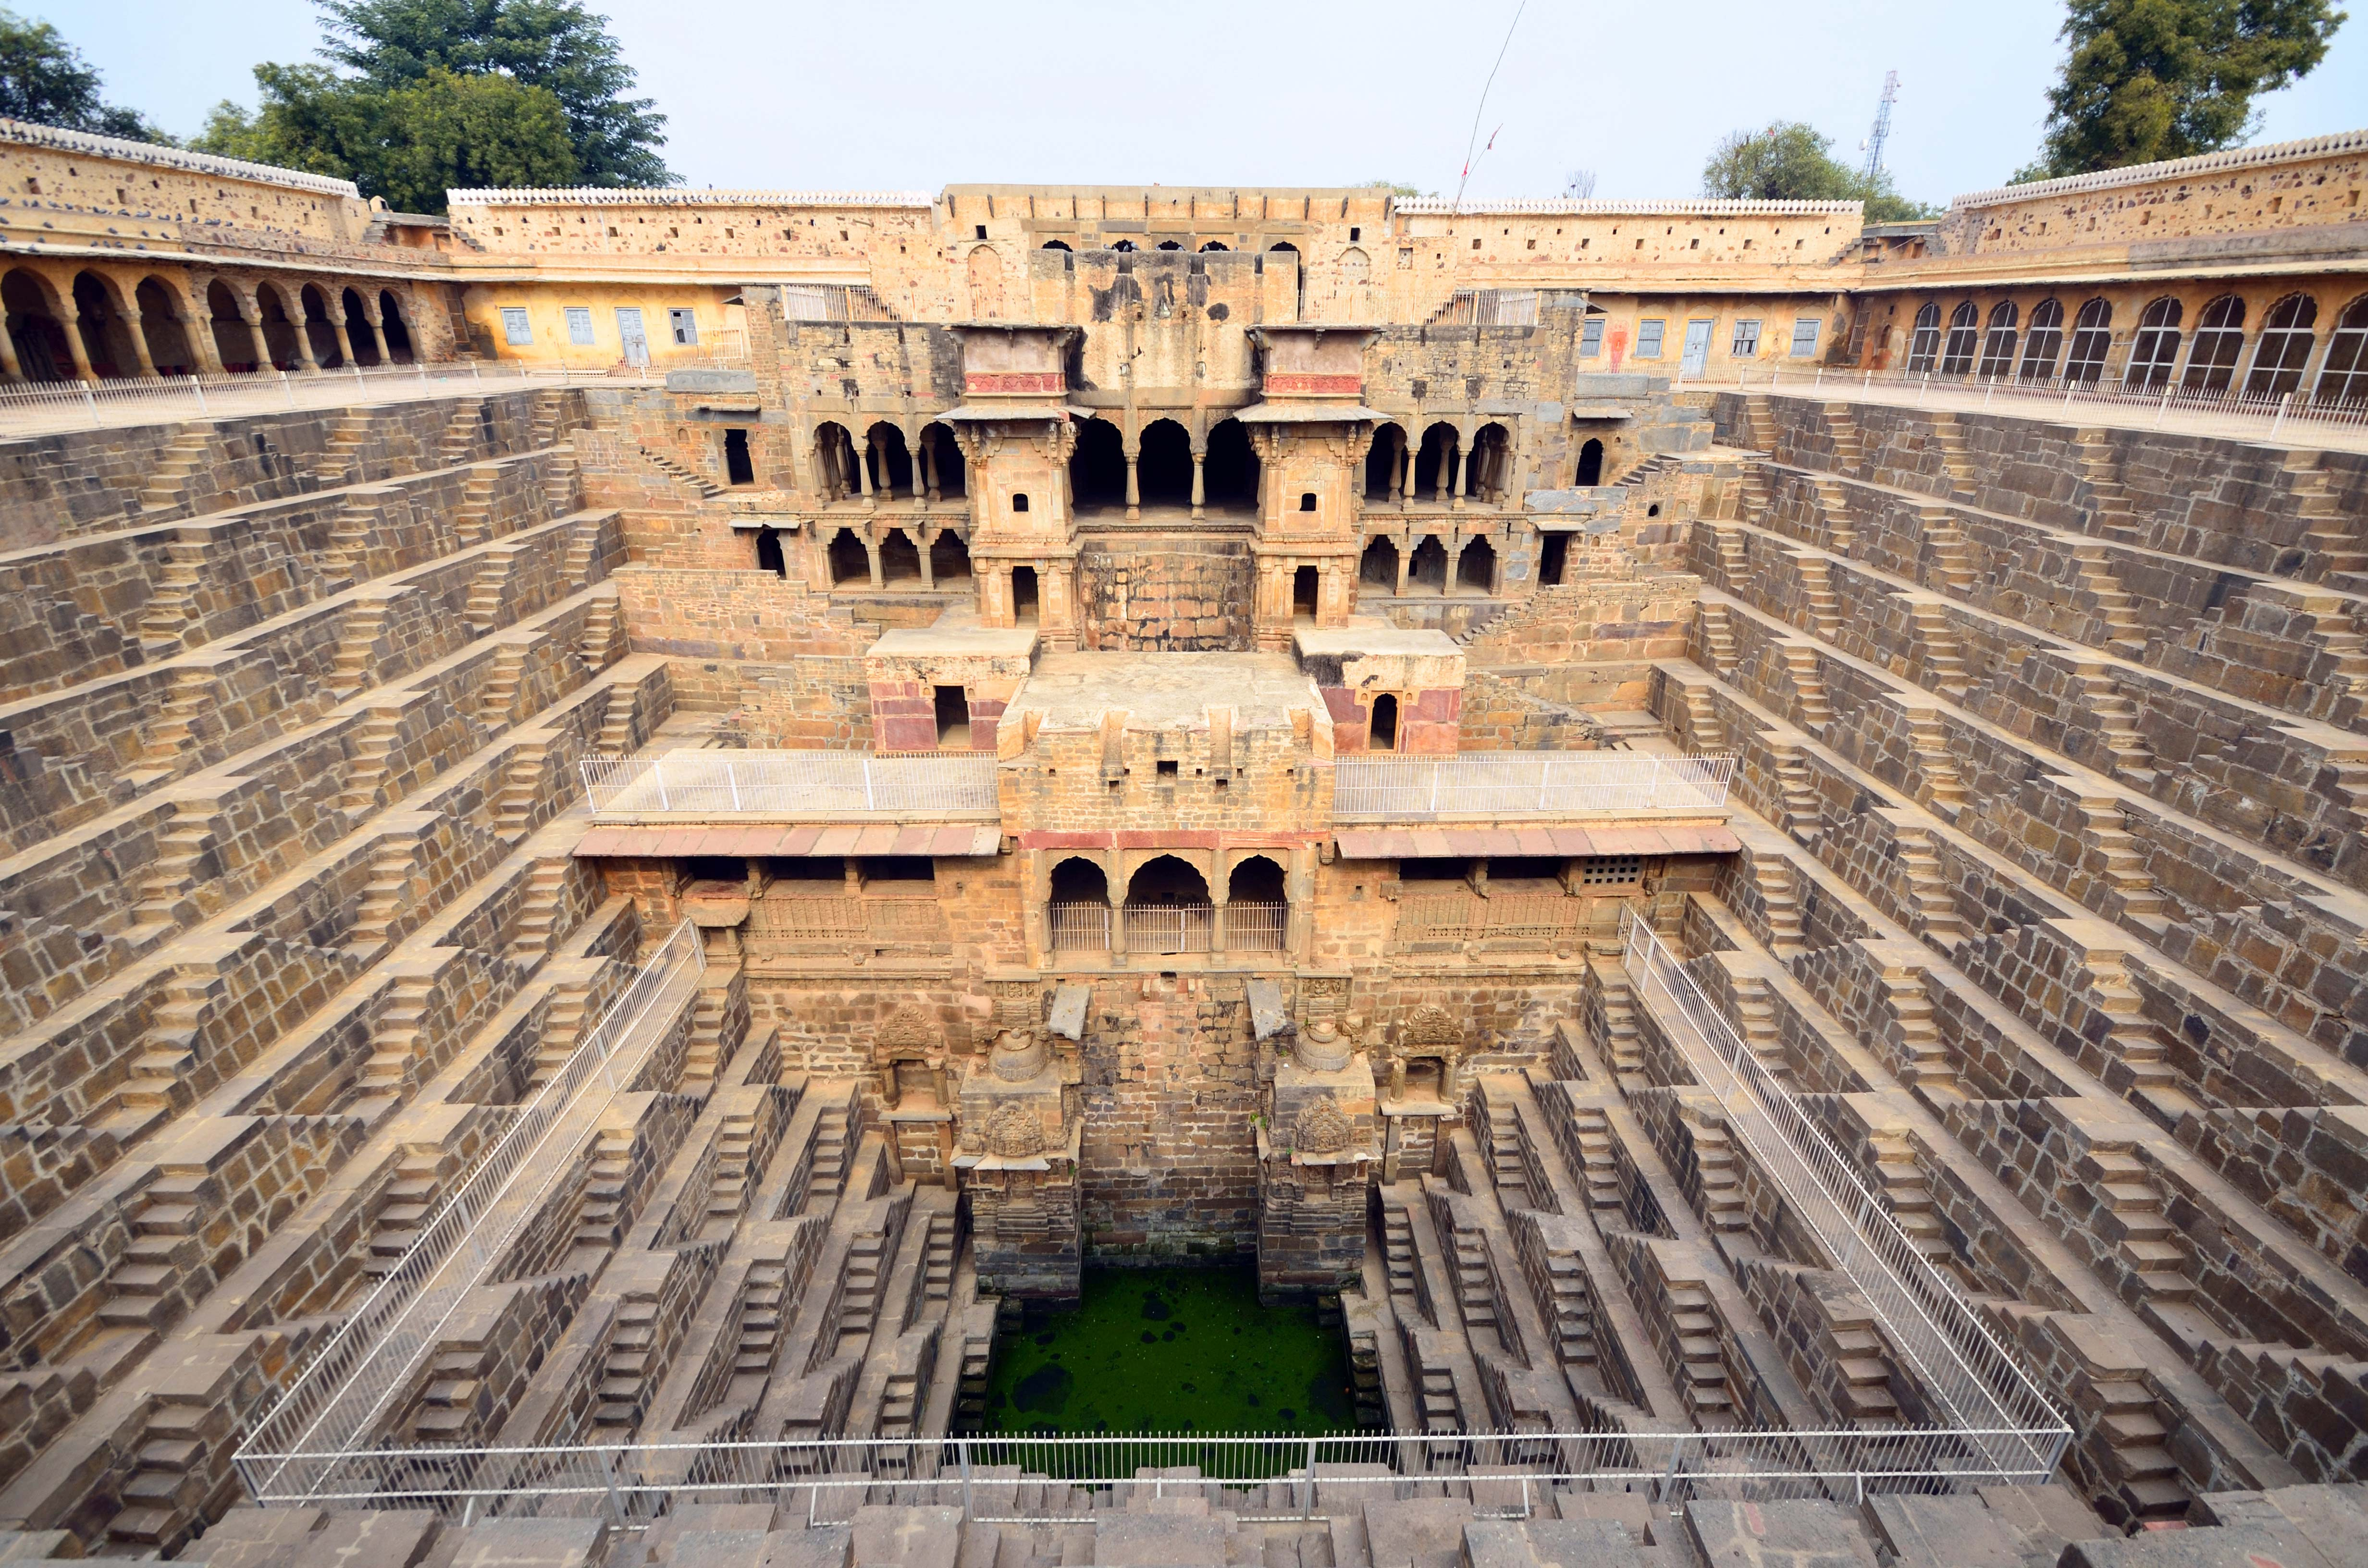 Chand Baori - 1000 Stepwell, India, india's must see